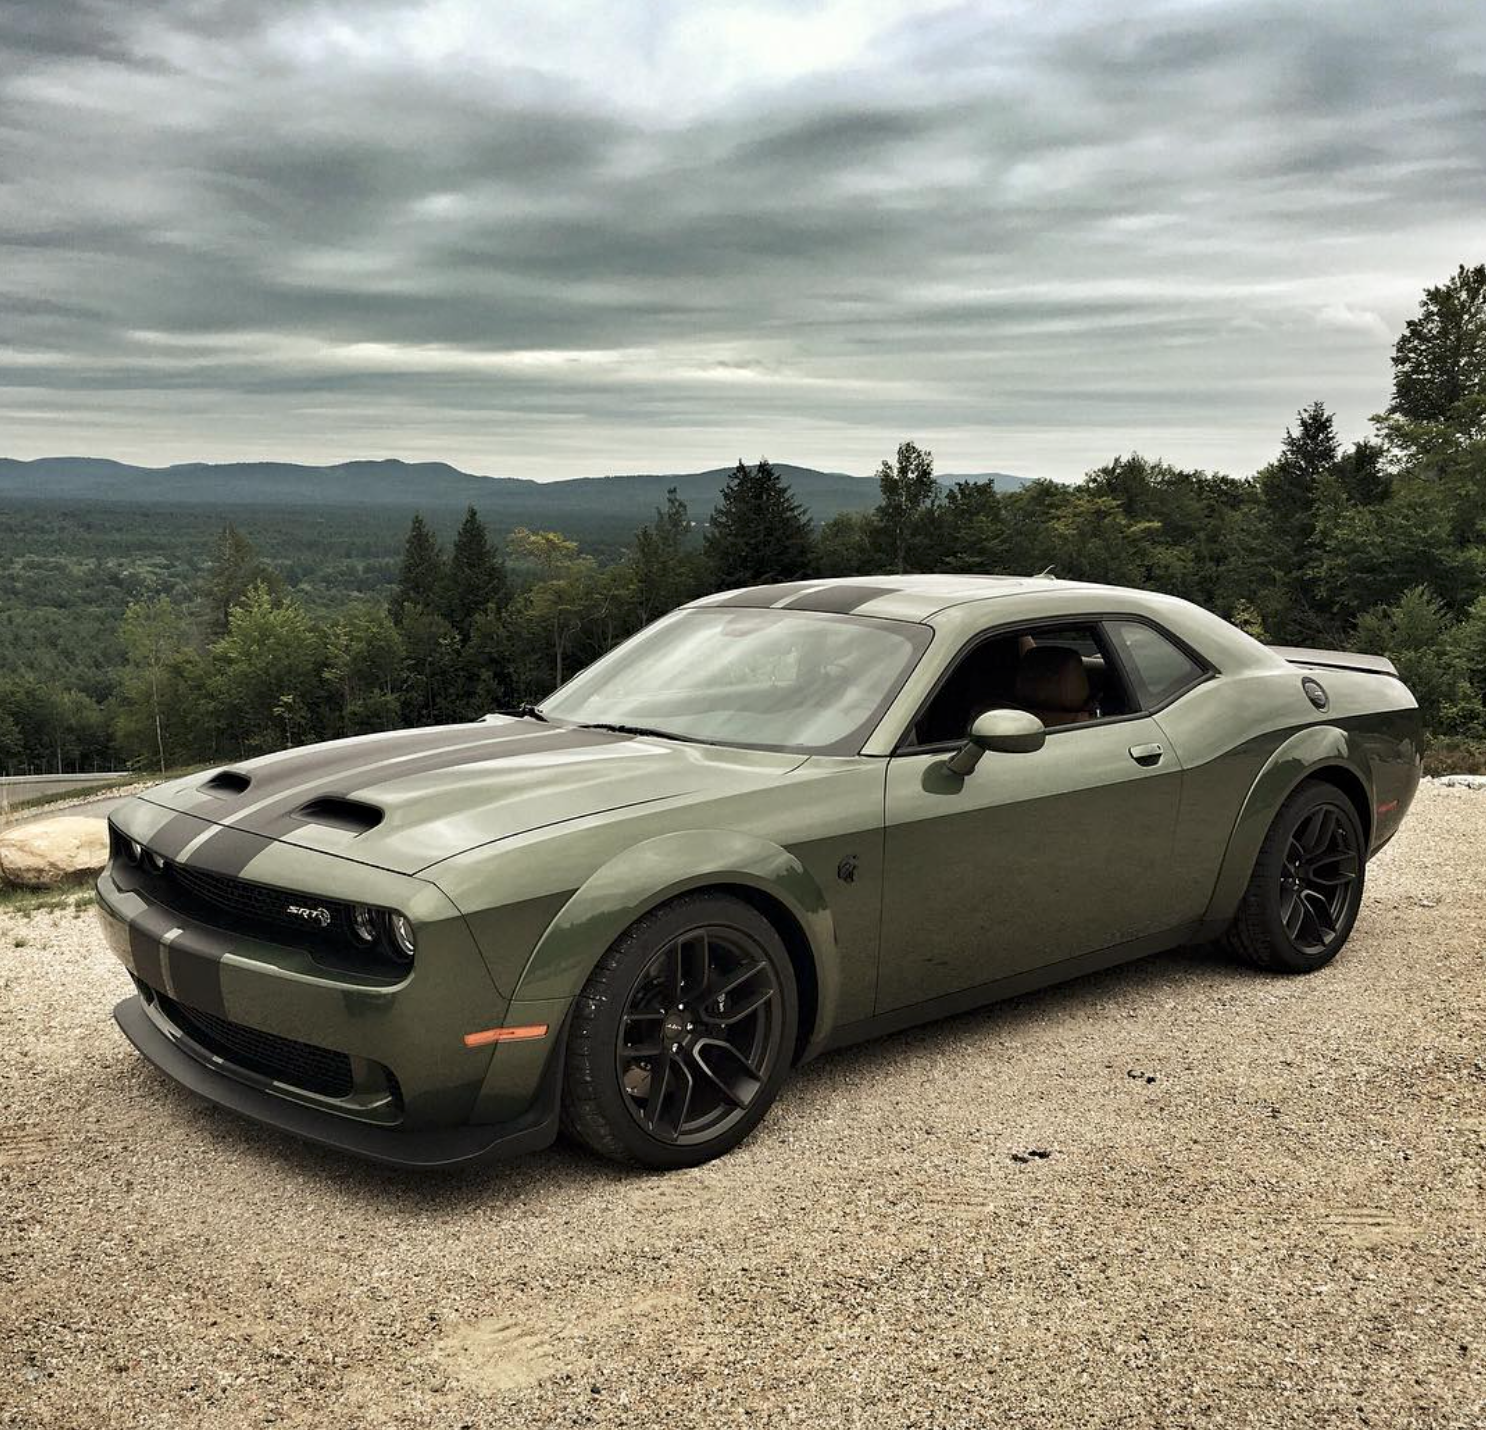 2019 Dodge Challenger Srt Hellcat Redeye In F8 Green With Dual Stripes Dodge Challenger Srt Hellcat Dodge Muscle Cars Challenger Srt Hellcat